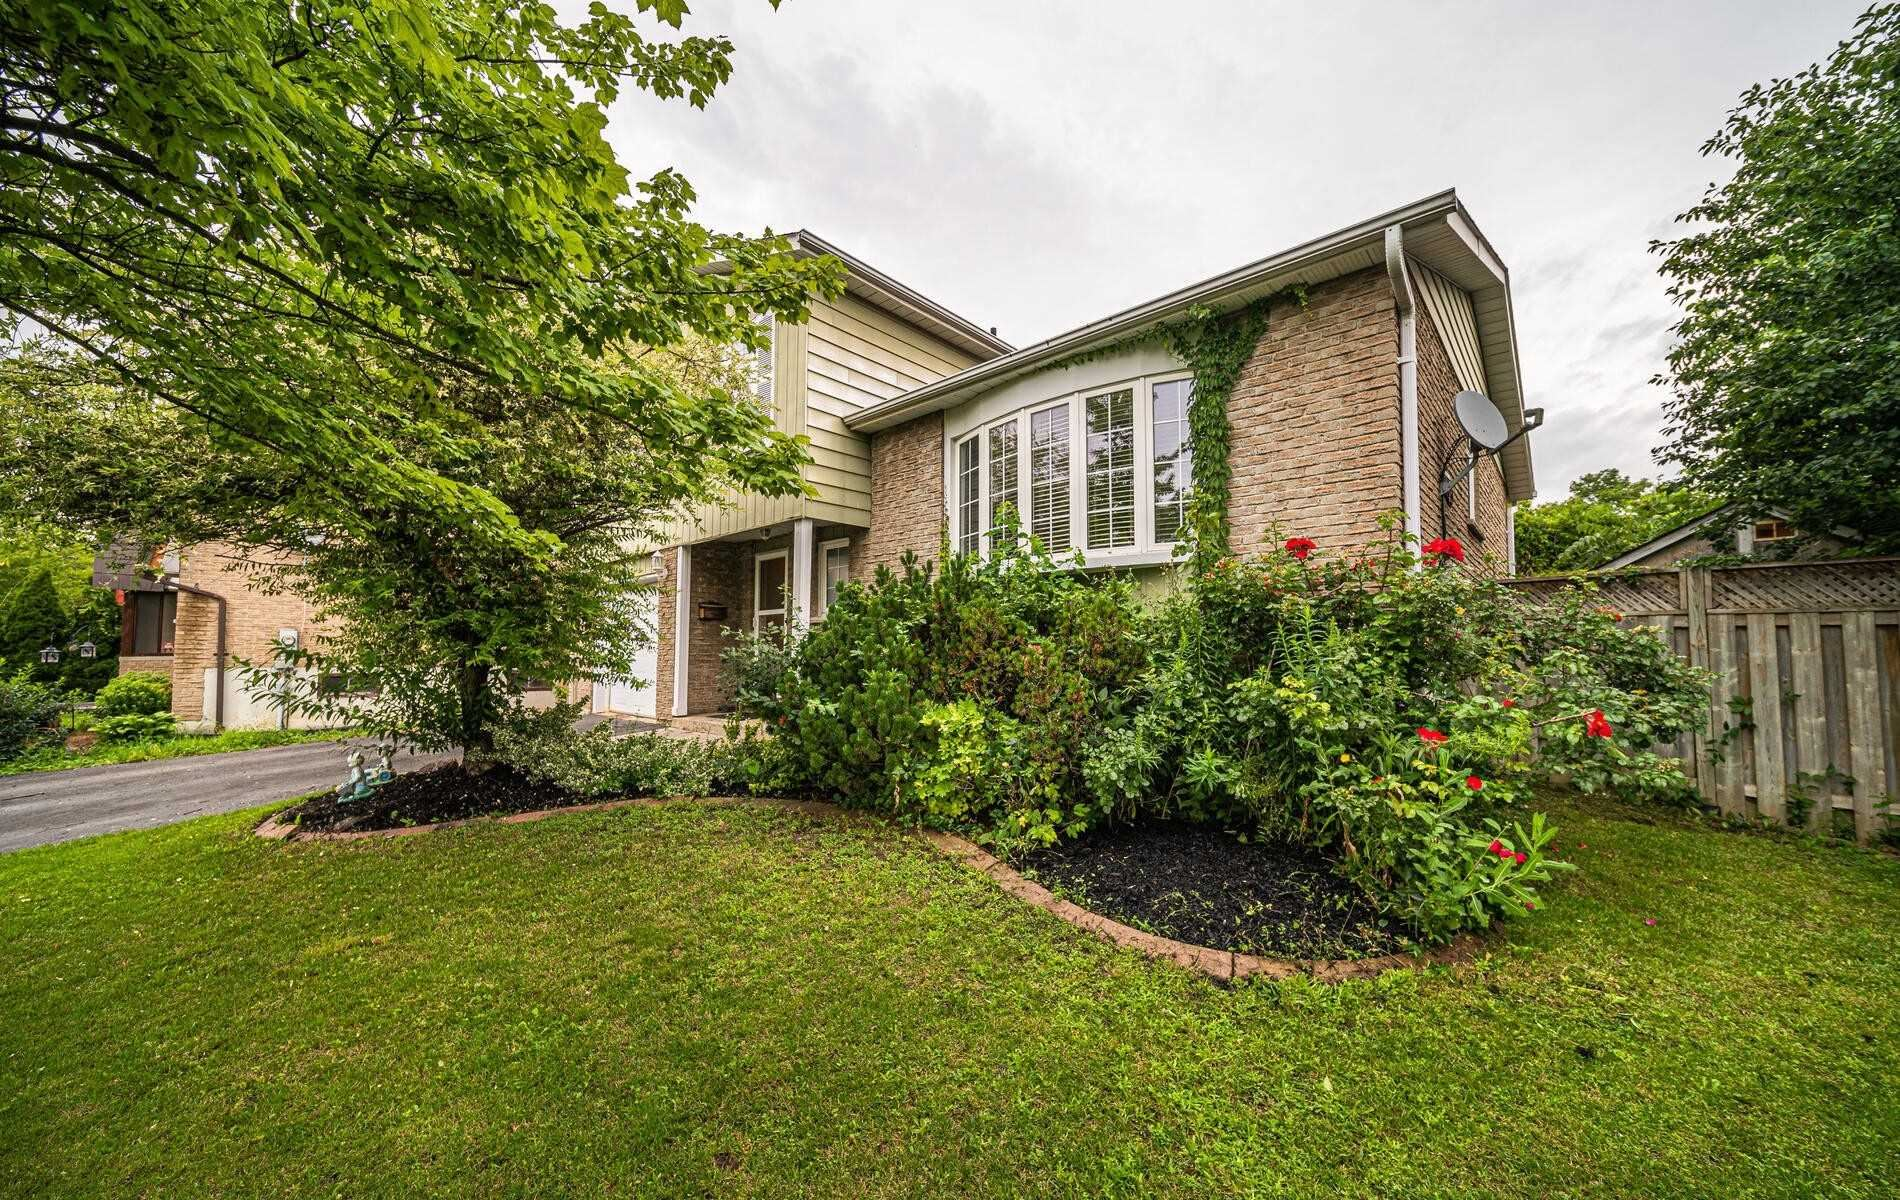 Photo of 19 Chopin Crt, Whitby, ON L1N6C5 (MLS # E5323071)